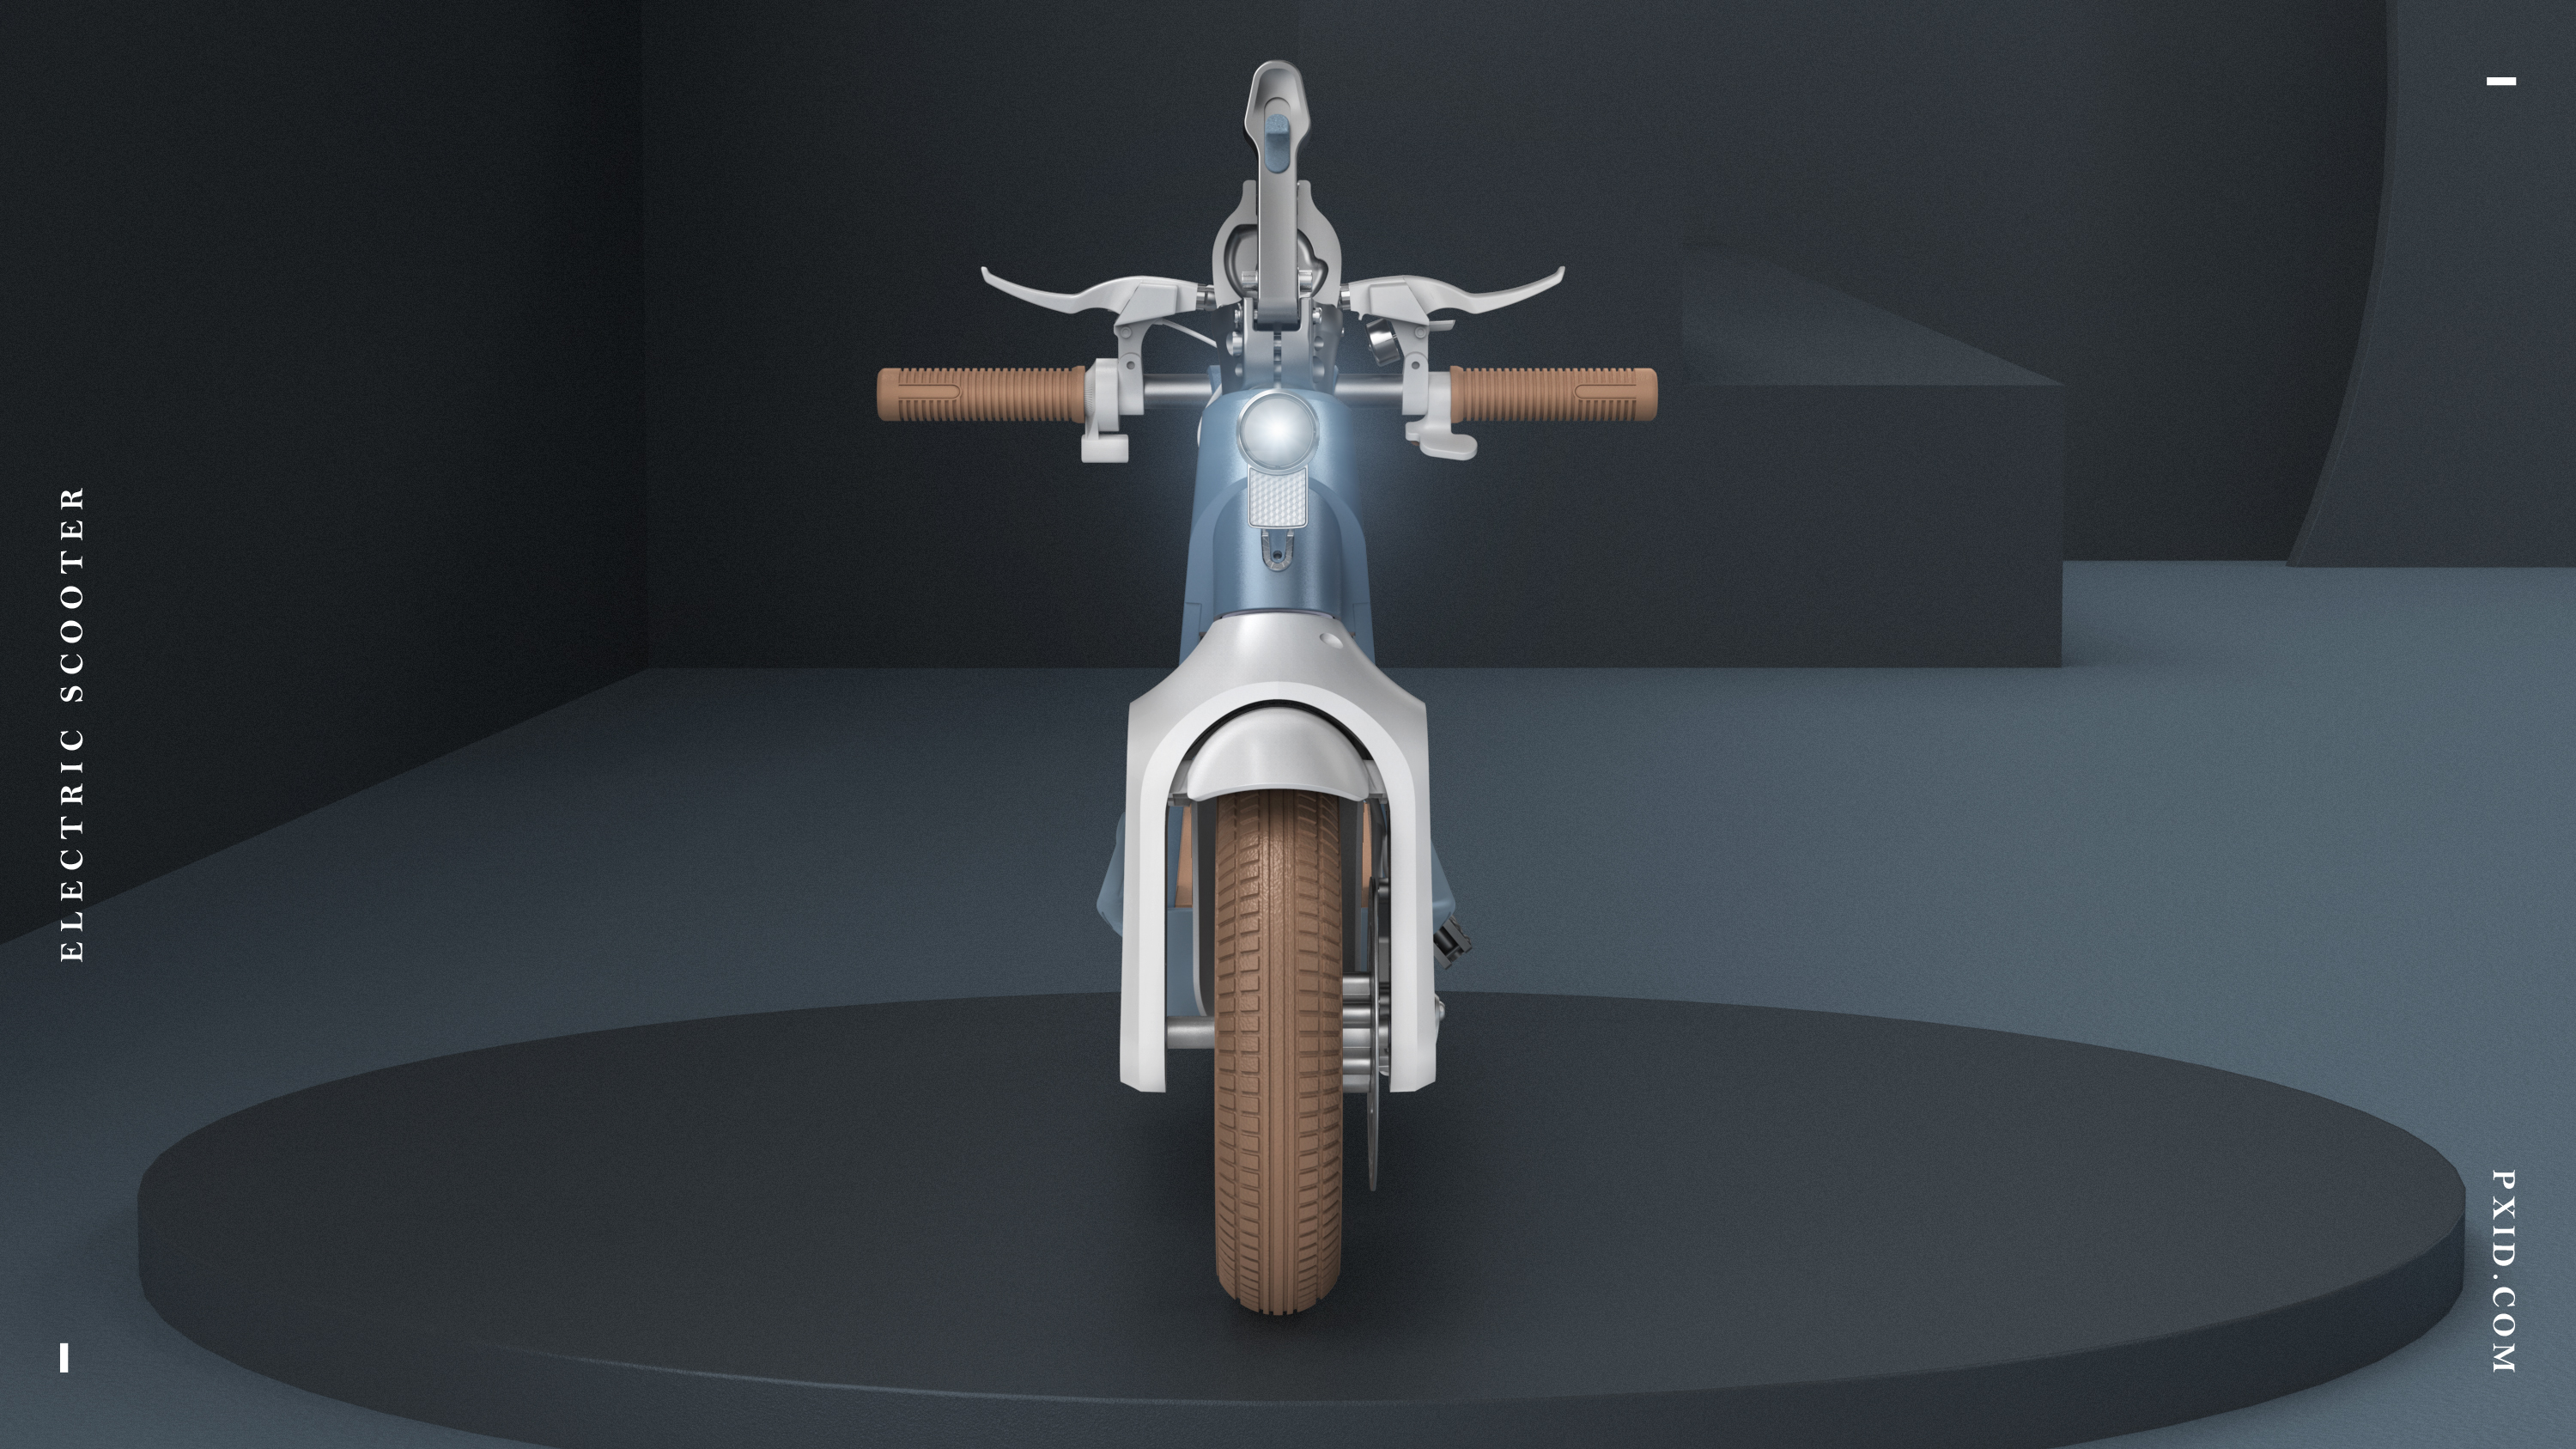 XY 10 inch electric scooter design